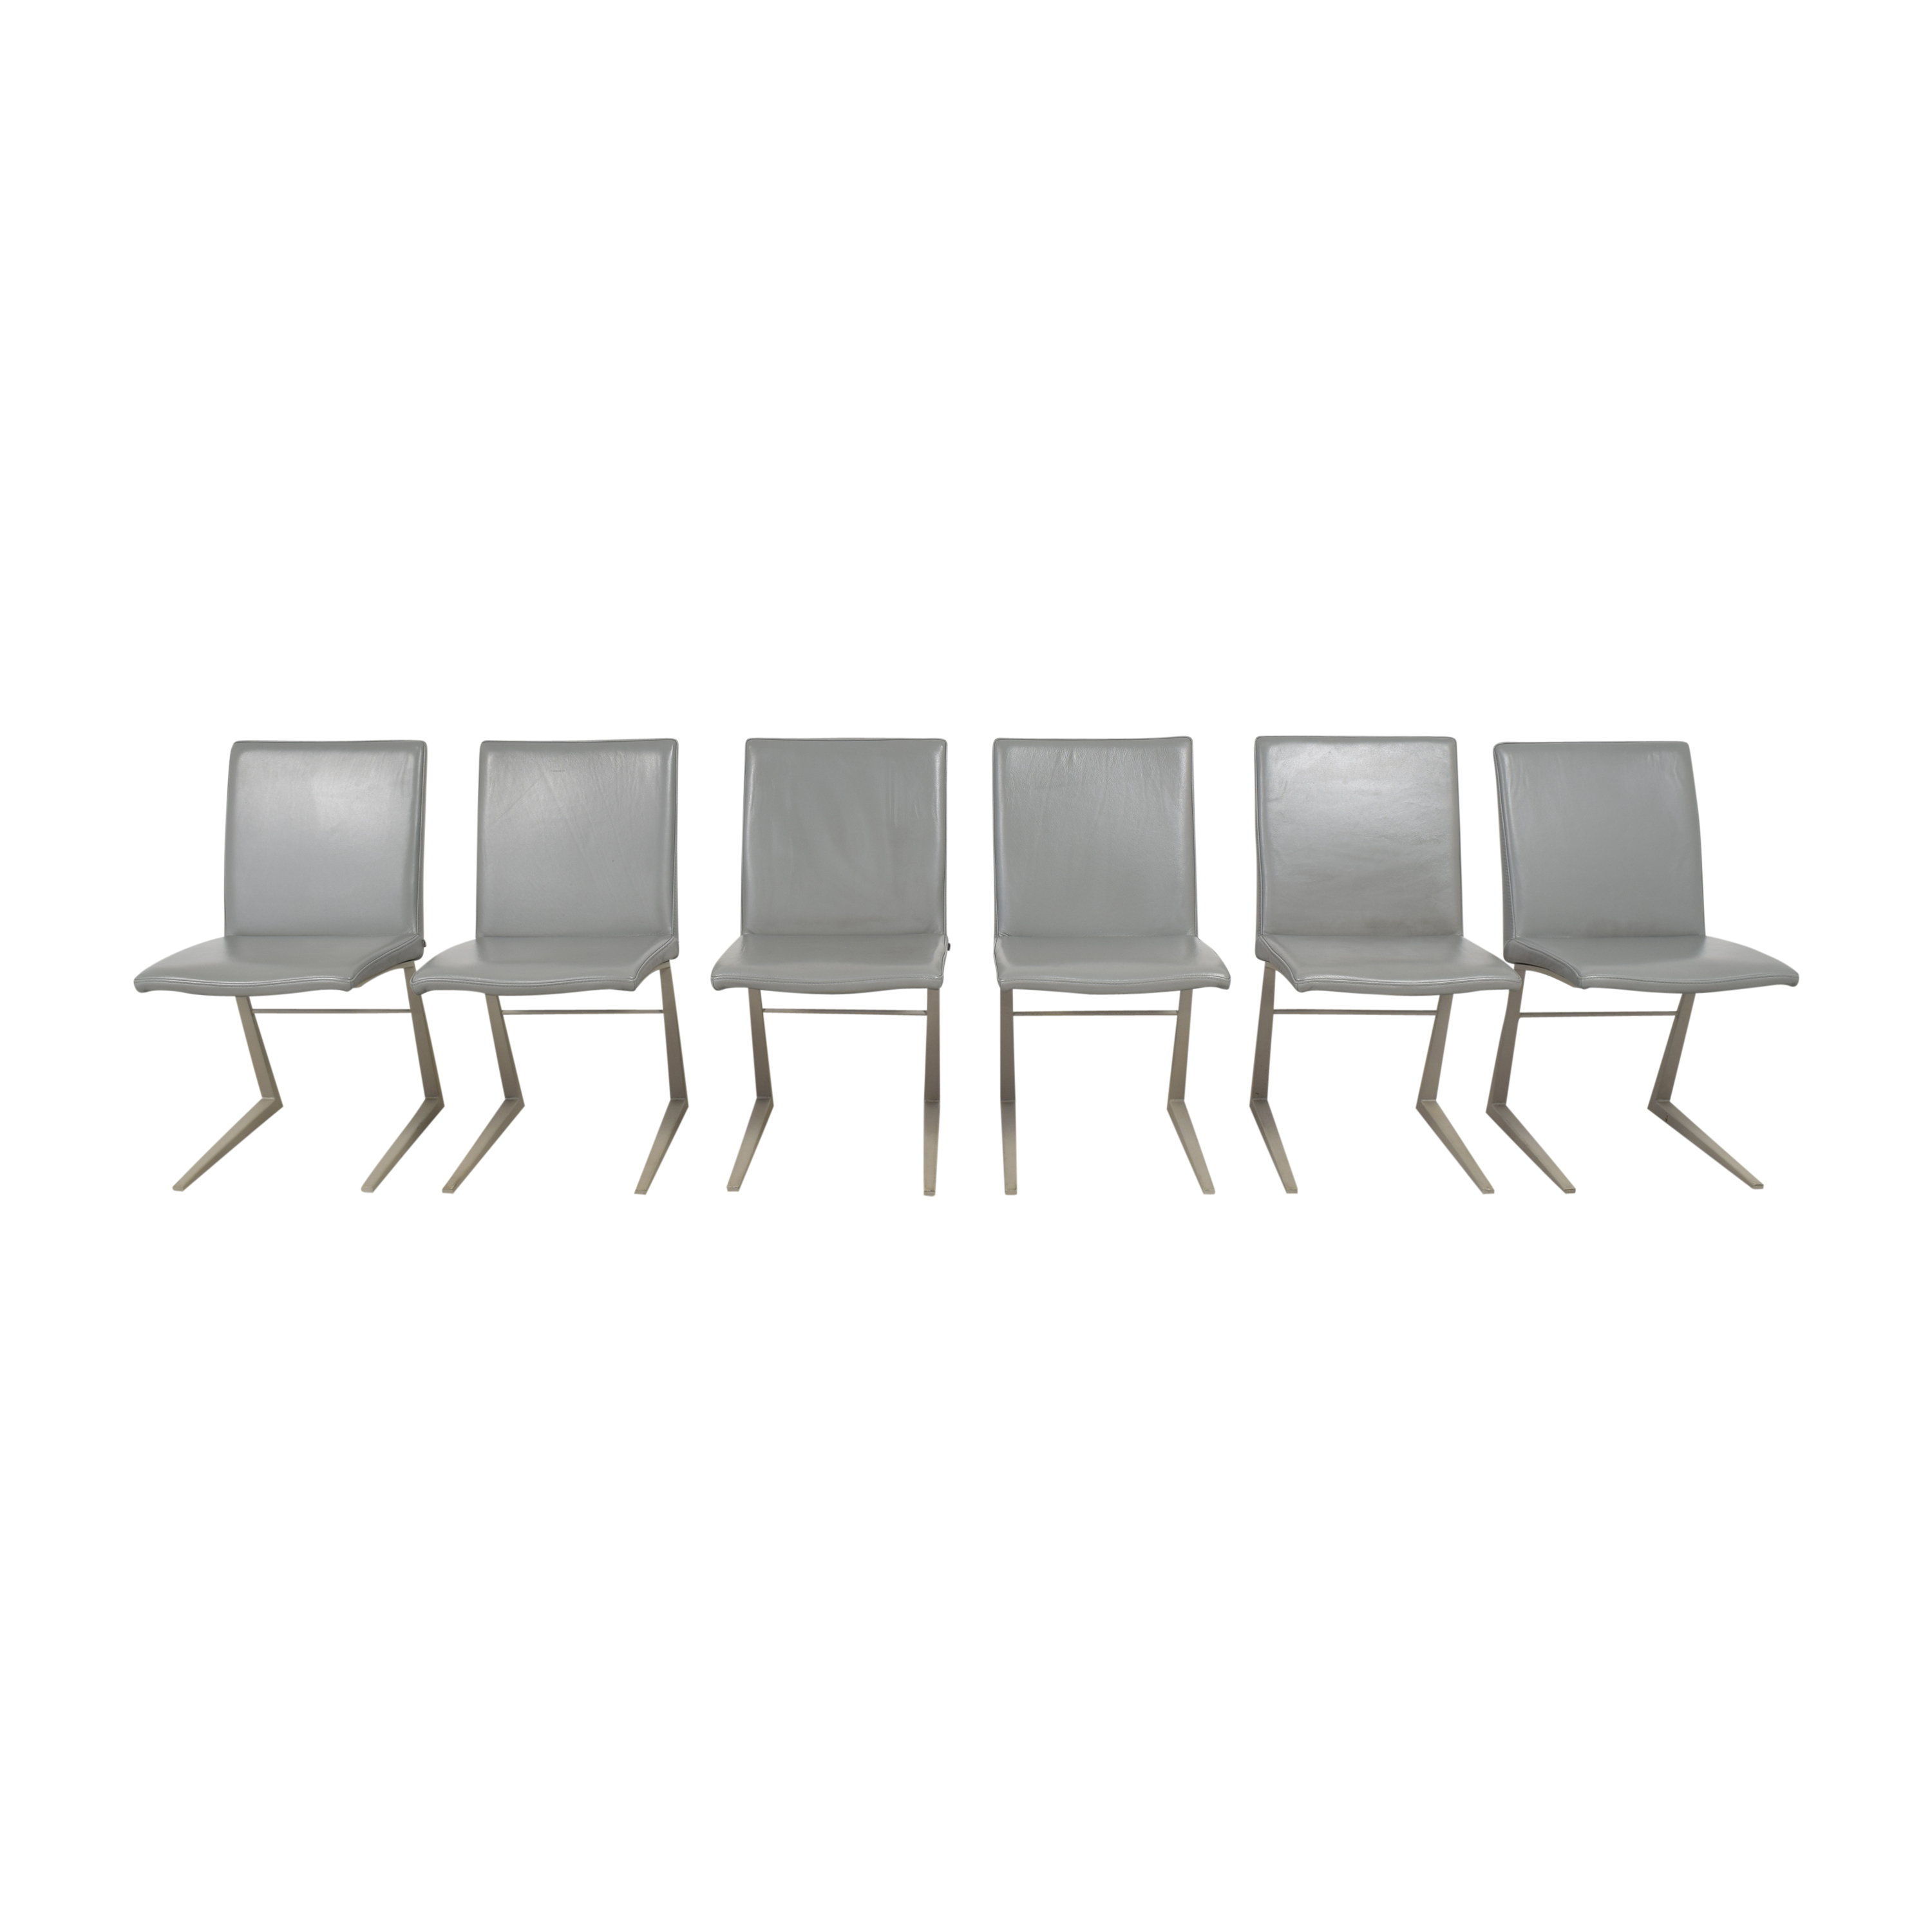 BoConcept BoConcept Mariposa Dining Chairs discount